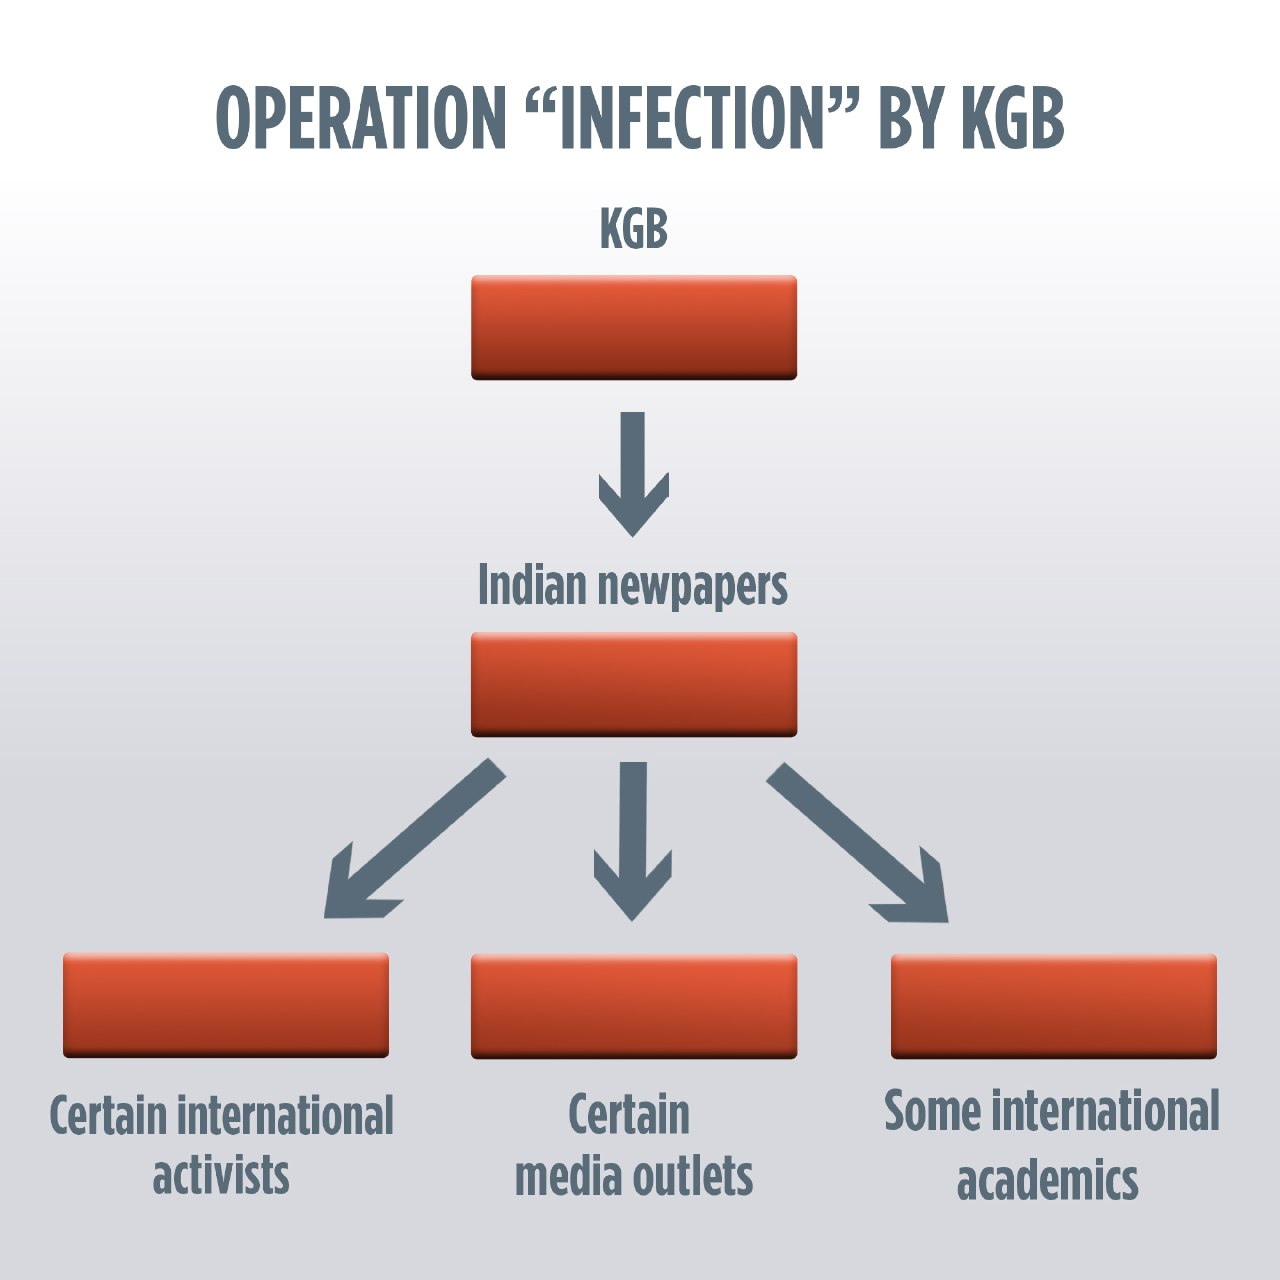 Operation Infection by KGB